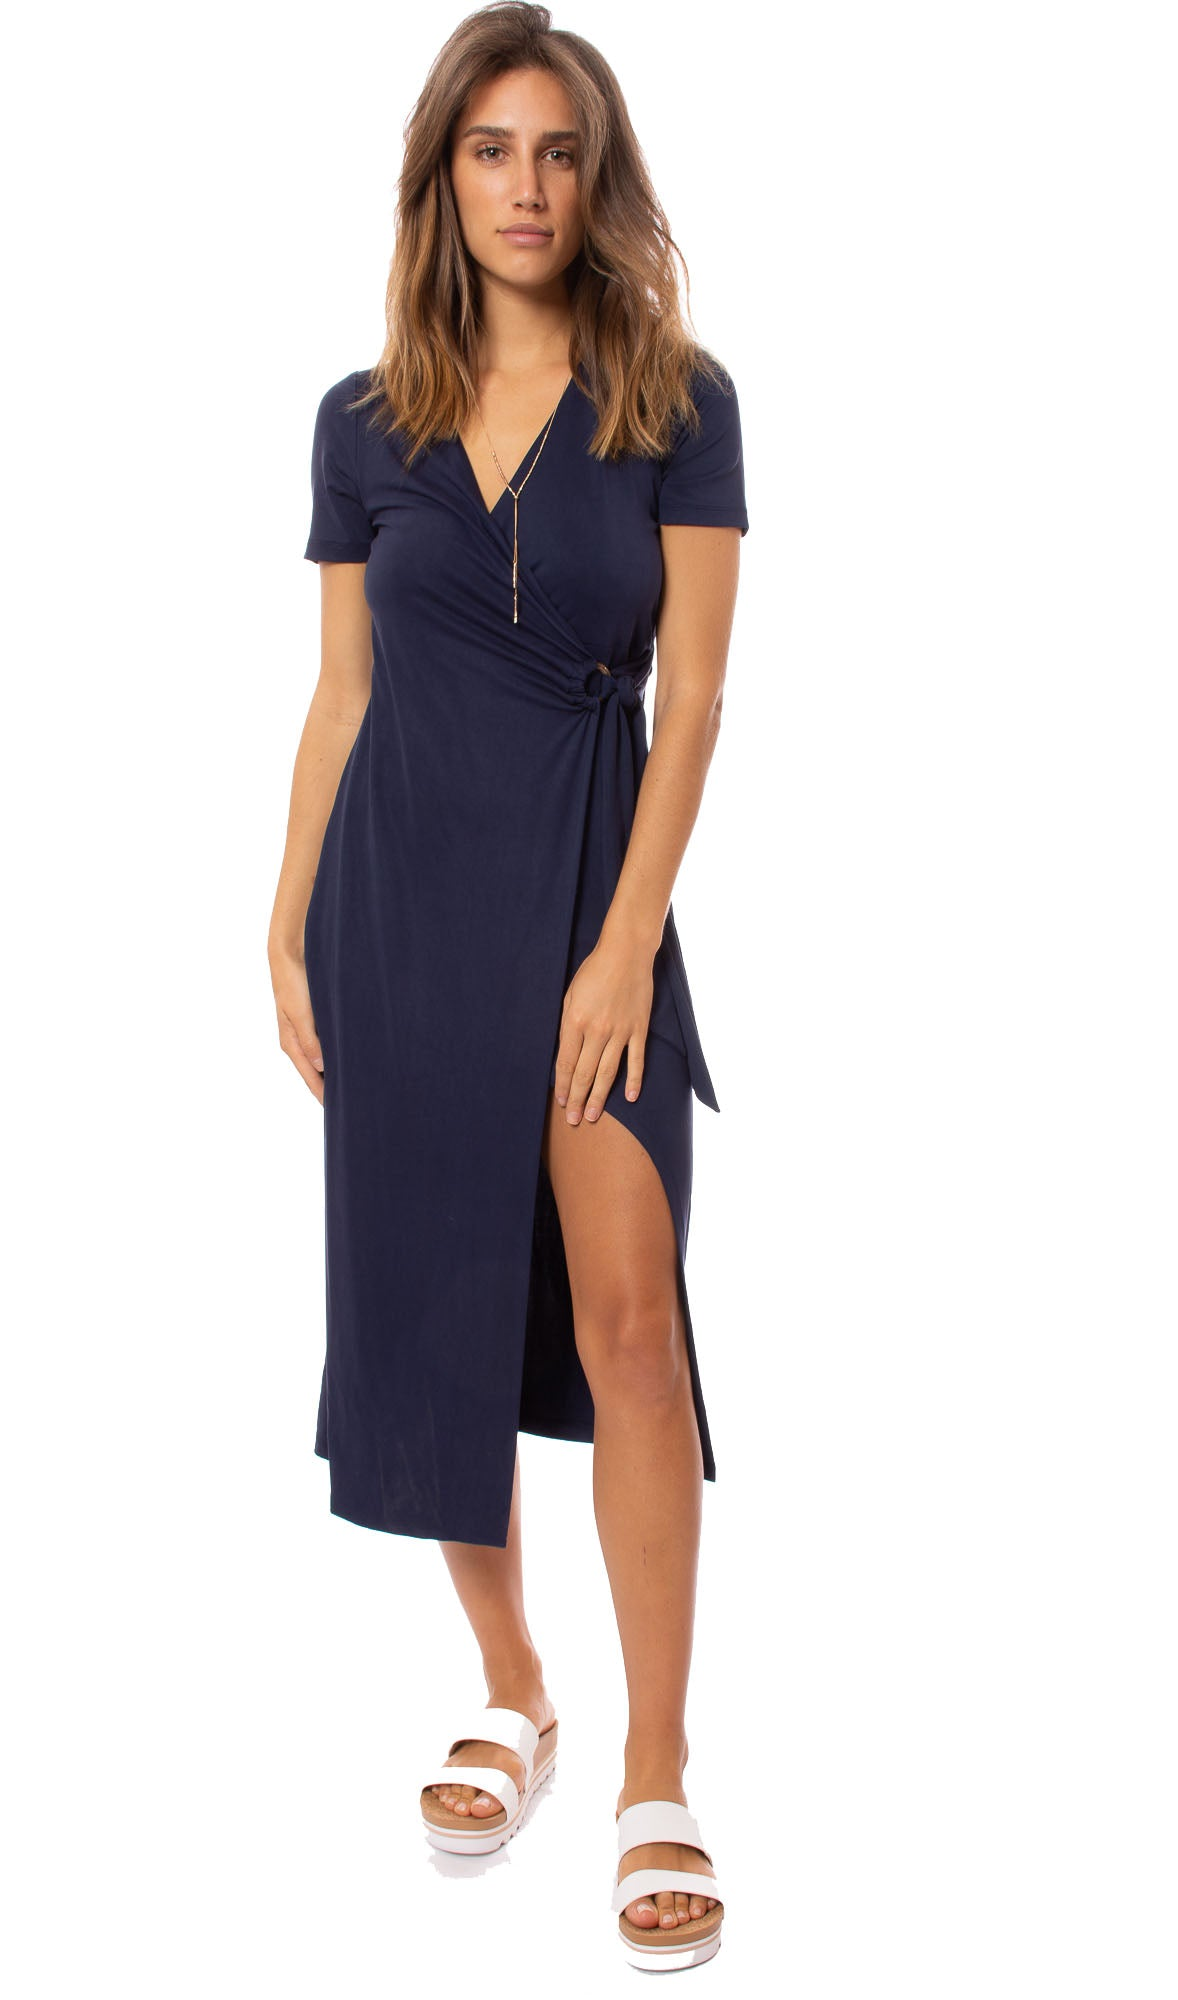 Heartland - Colton Dress (202DJ2B, Indigo)